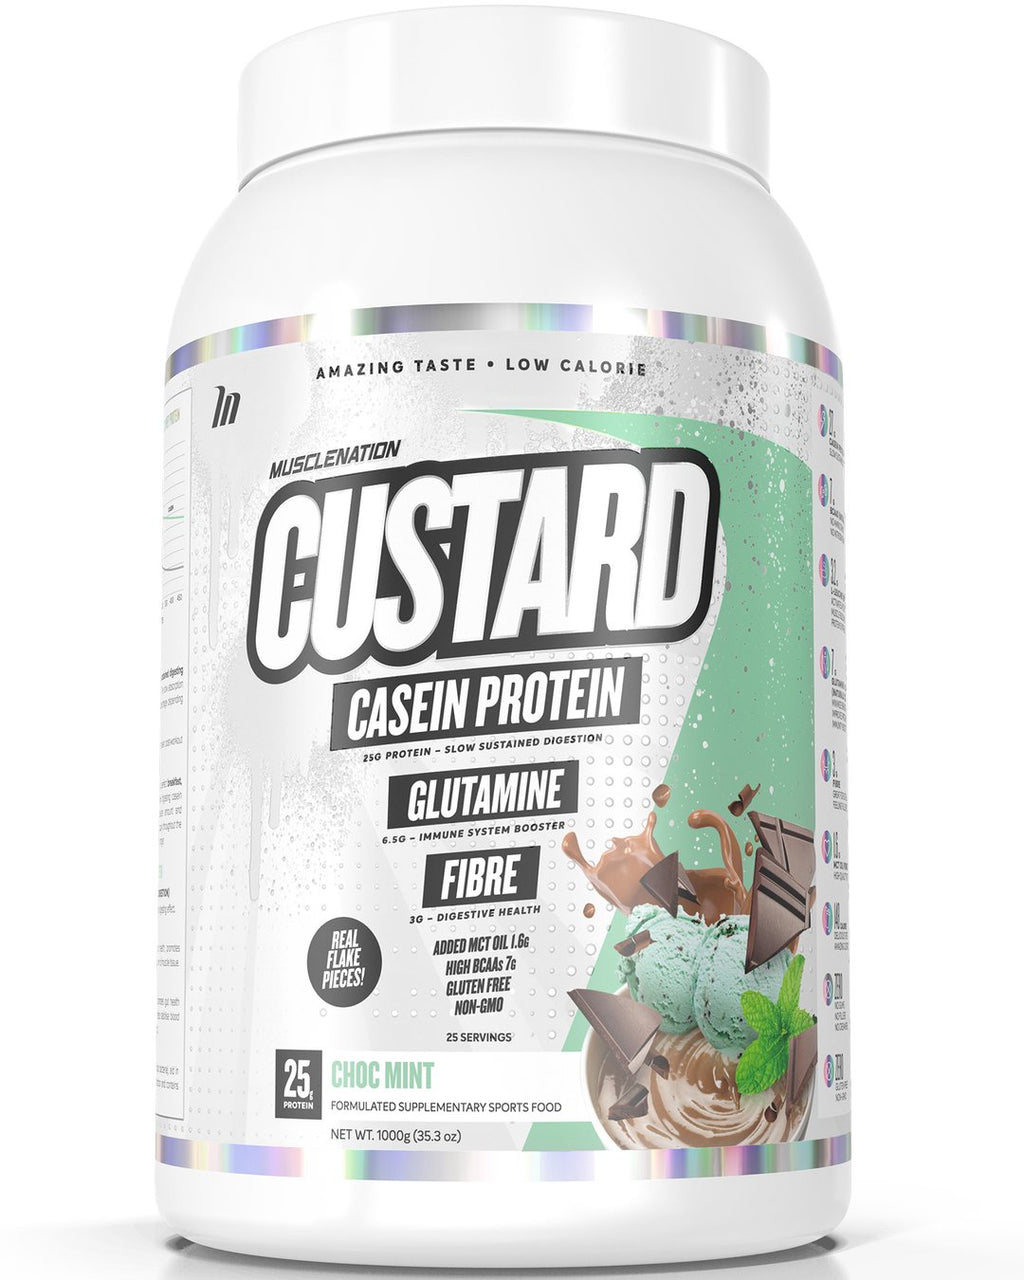 CUSTARD CASEIN PROTEIN CHOC MINT (W/ REAL CHOC FLAKE PIECES)